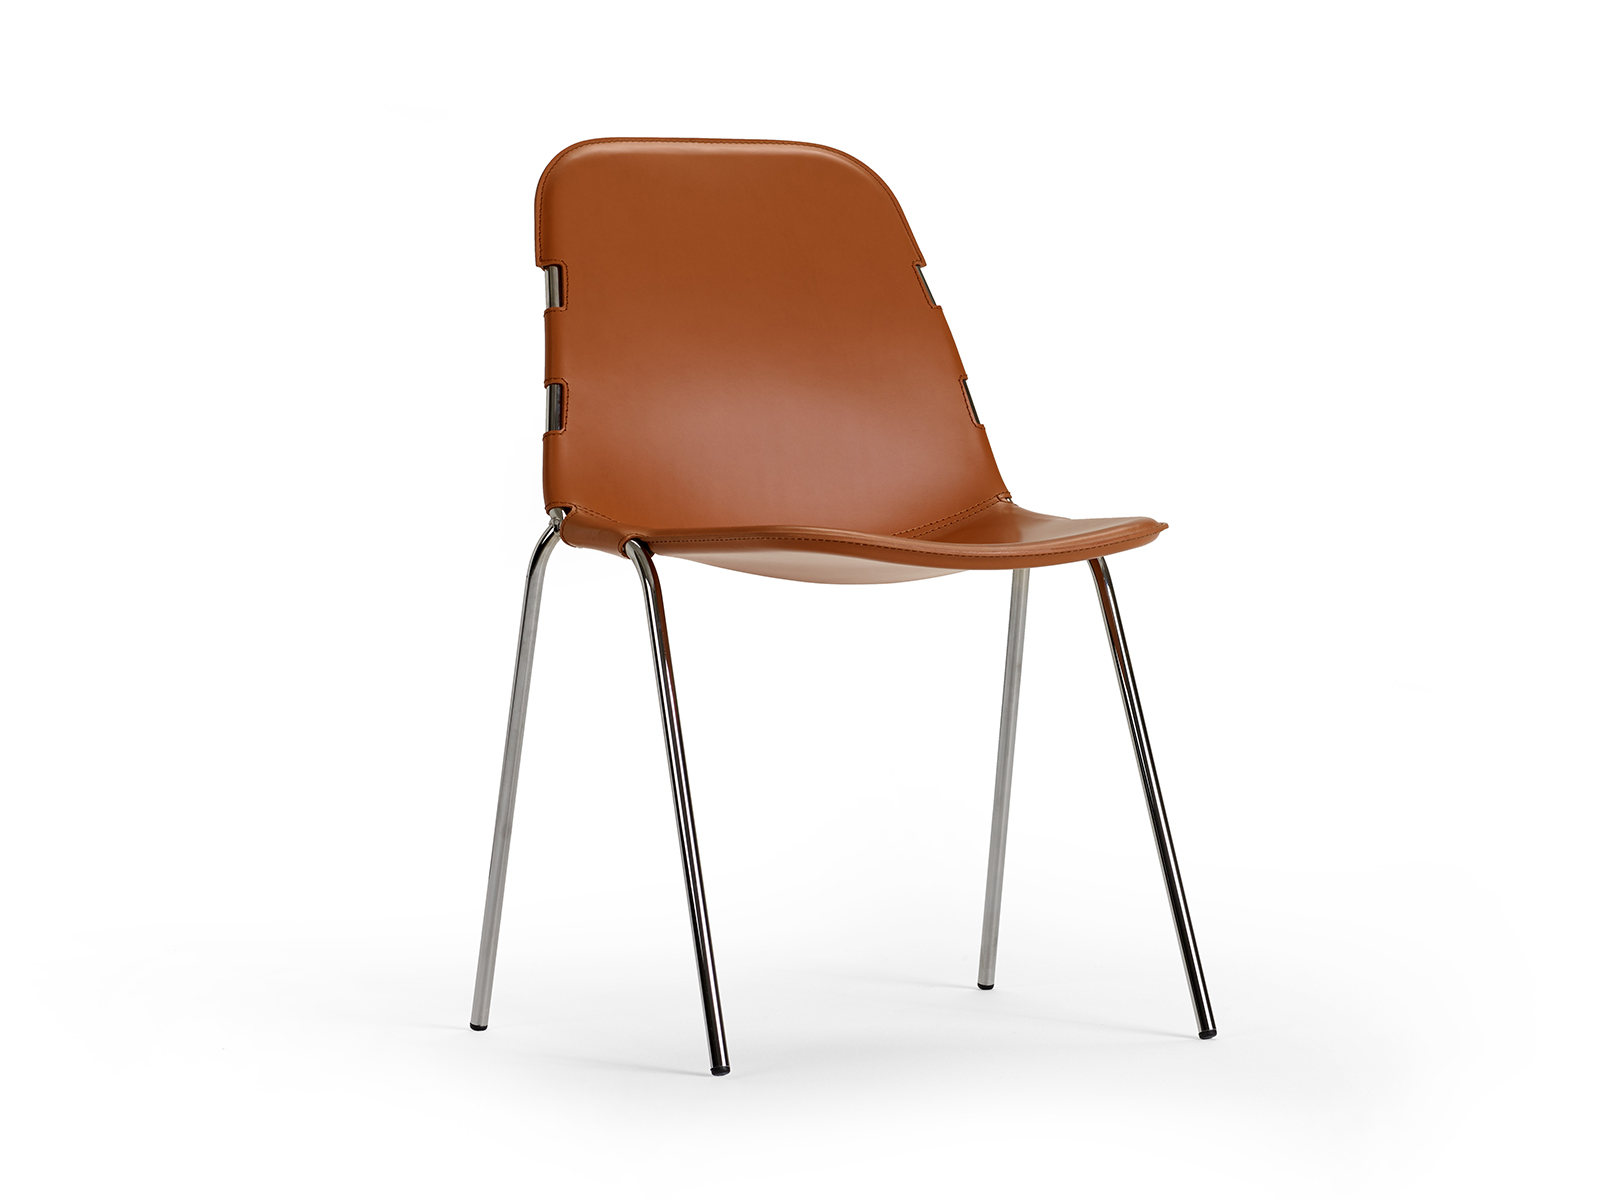 Bike chair for Offecct - Exhibiting at Offecct, Salone del Mobile Milano, Hall20 StandF28